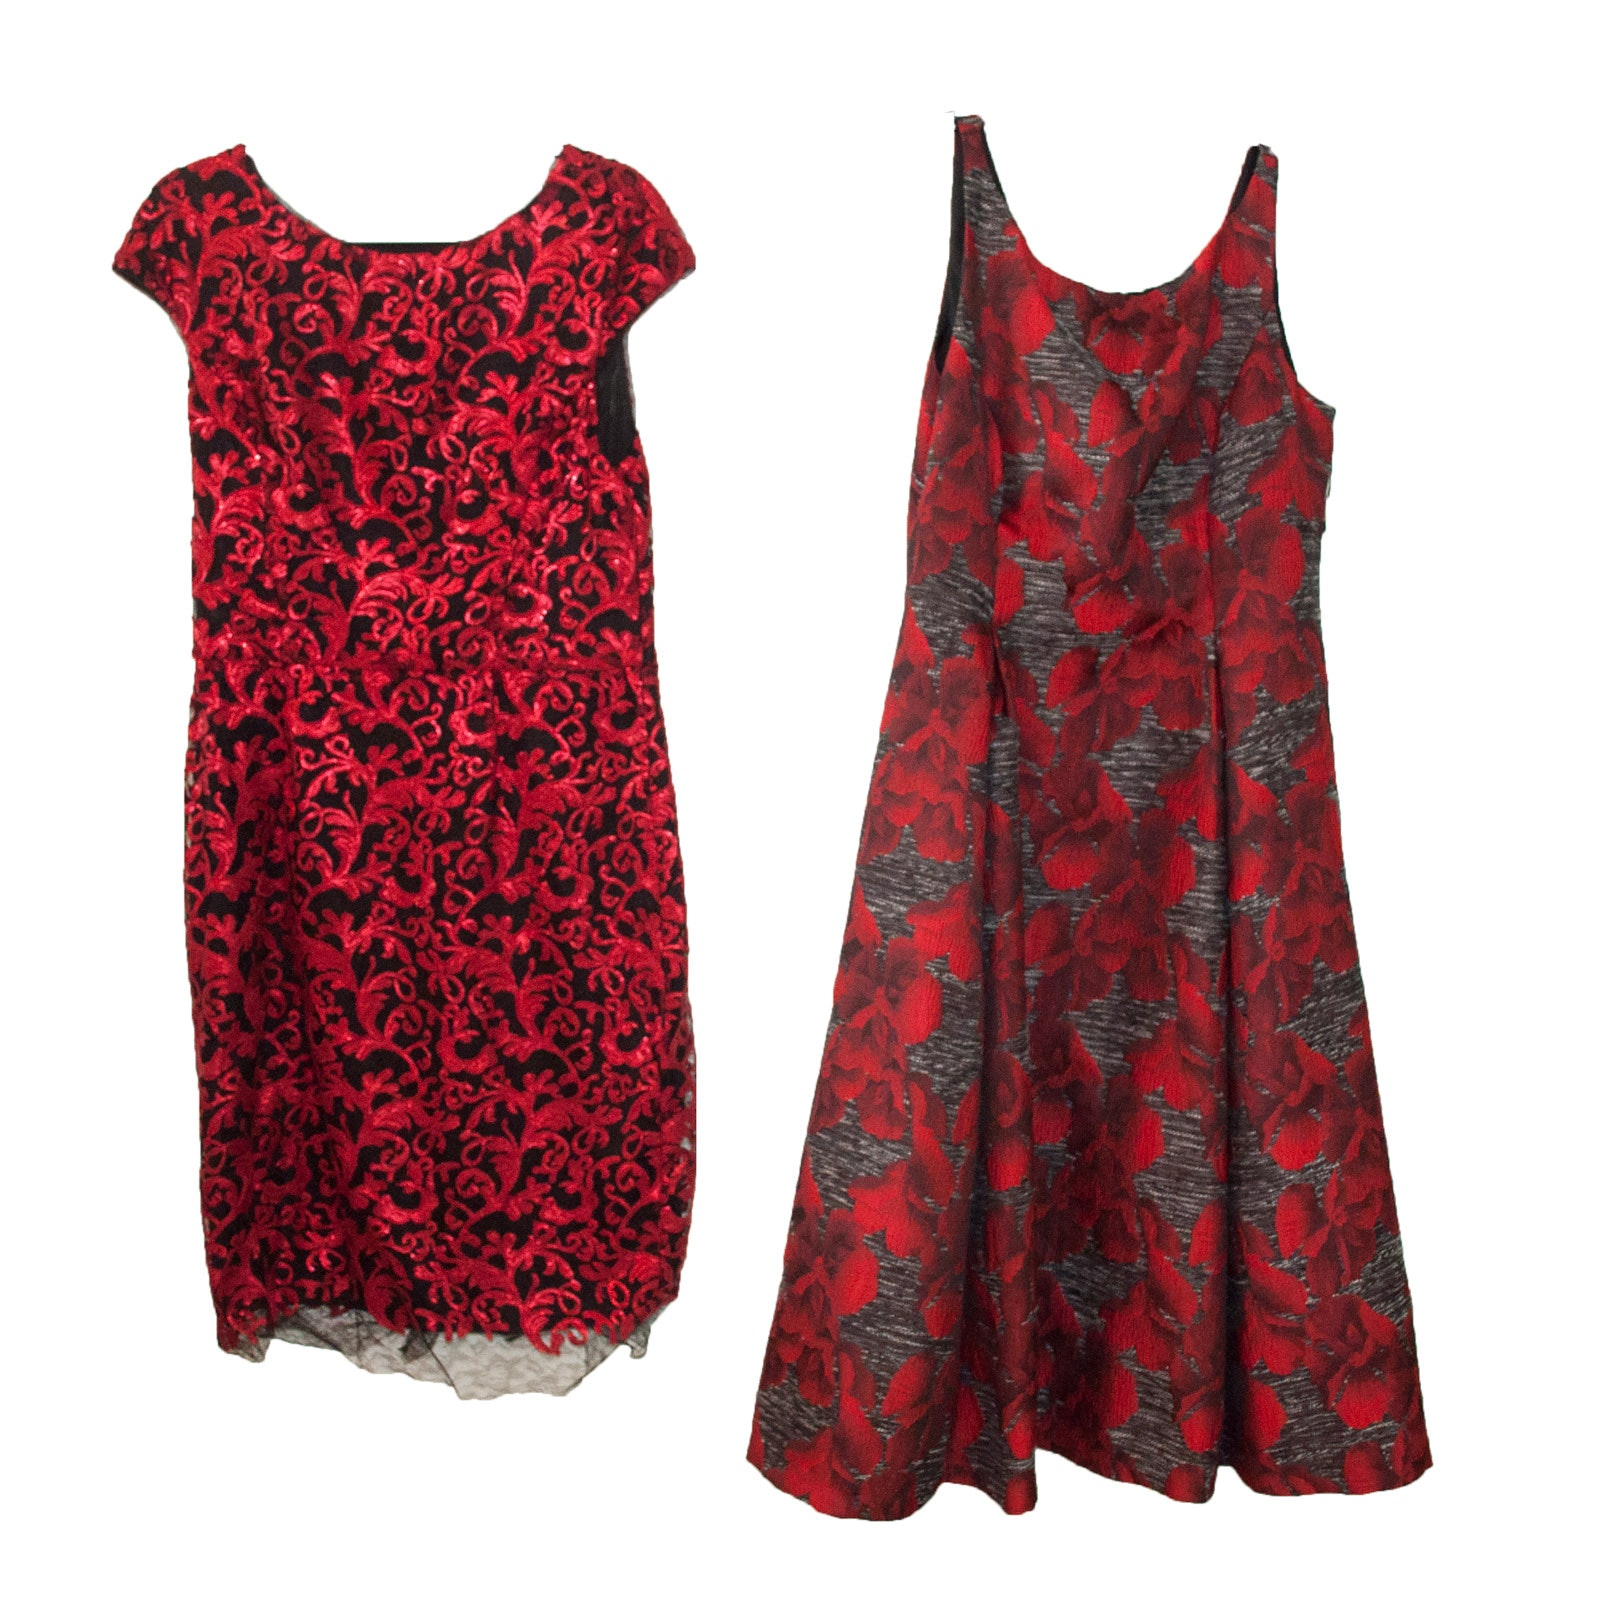 Adrianna Papell and Antonio Melani Print Dresses